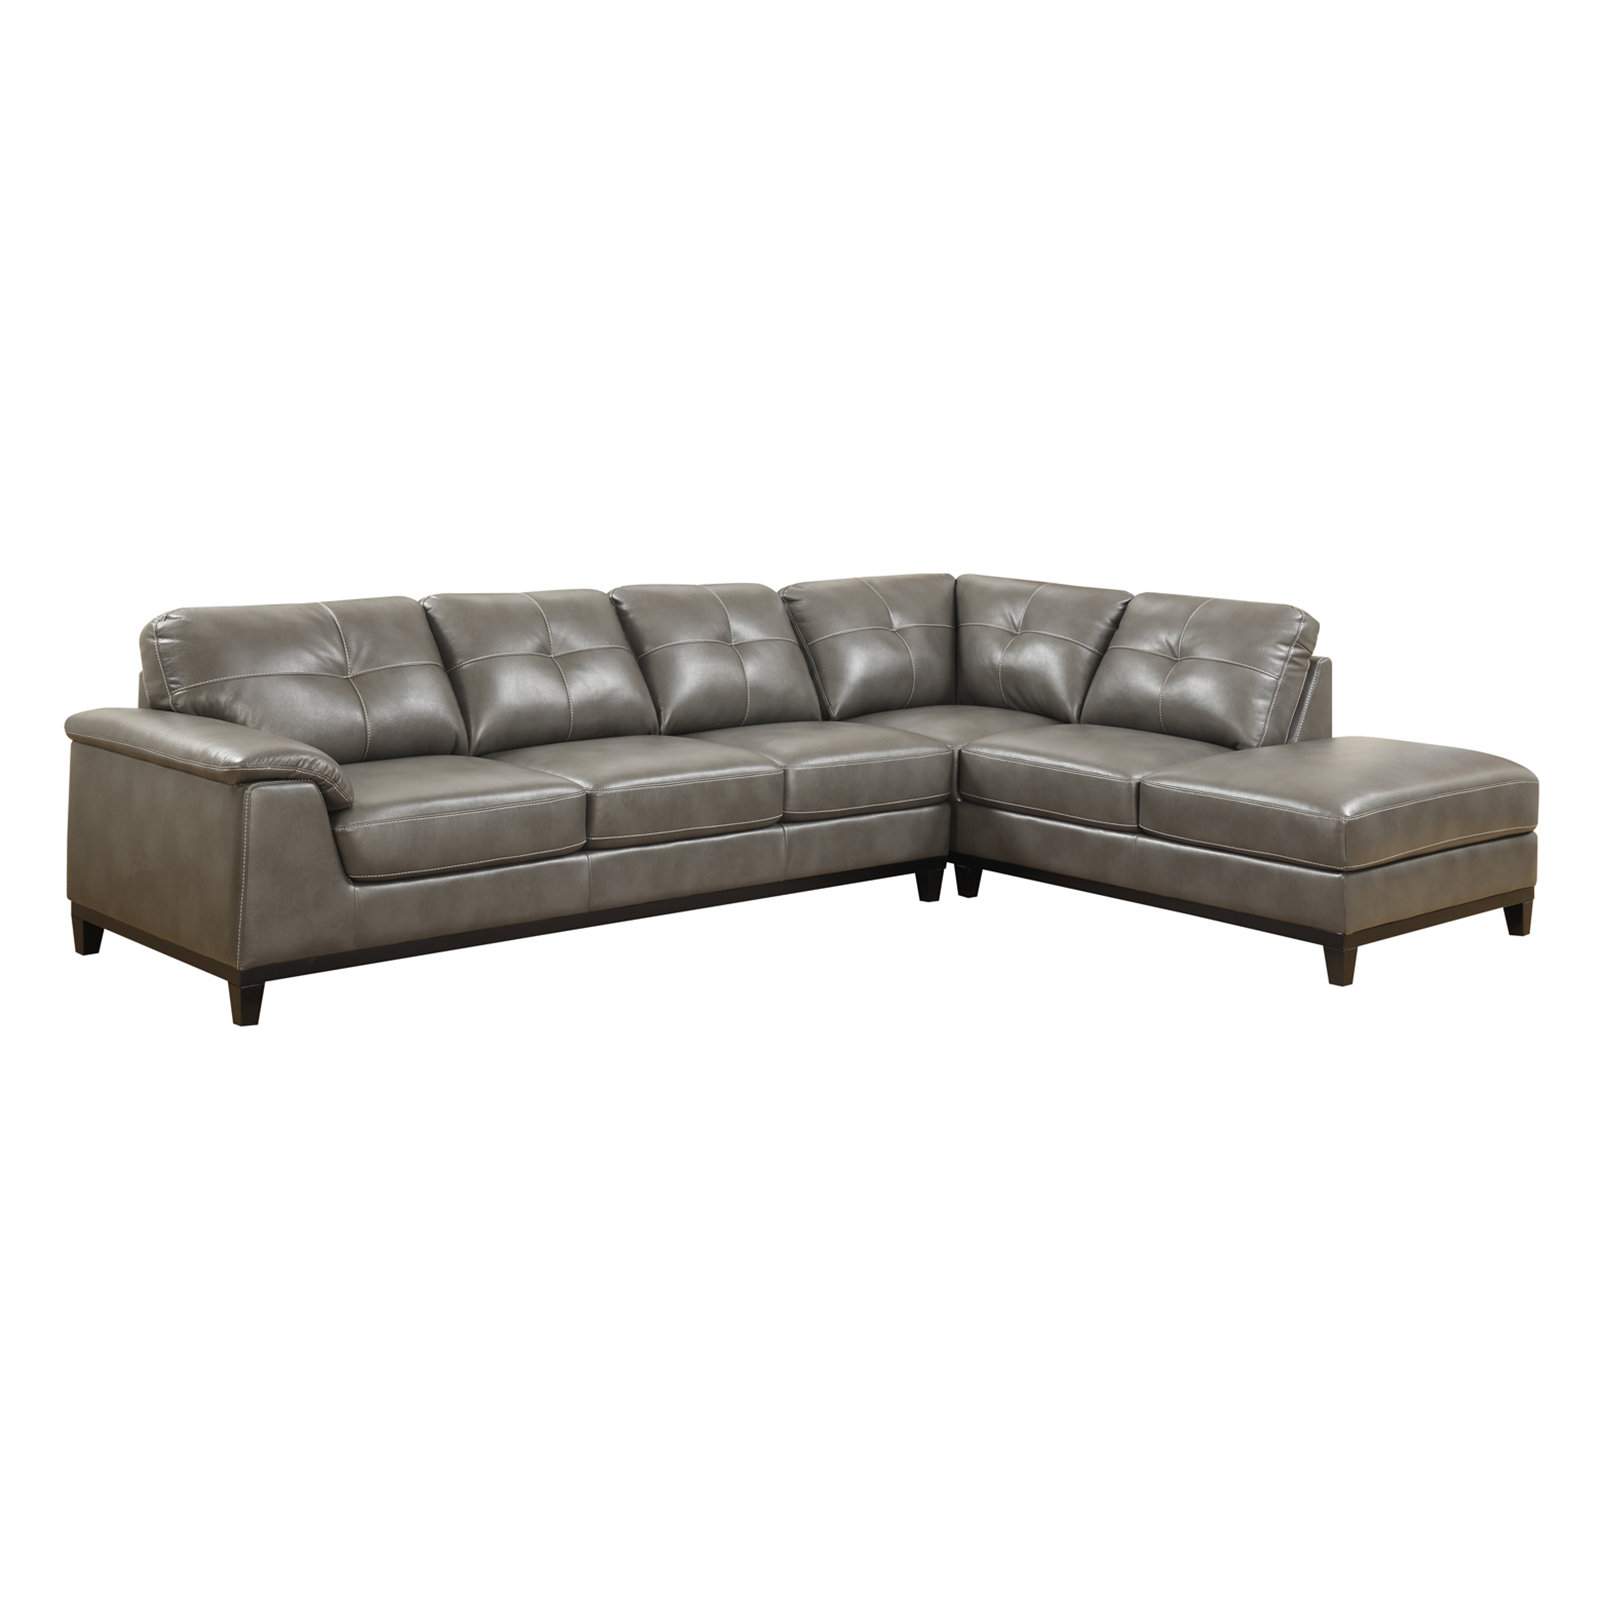 Emerald Home Marquis 2 Piece Sectional Sofa with Chaise